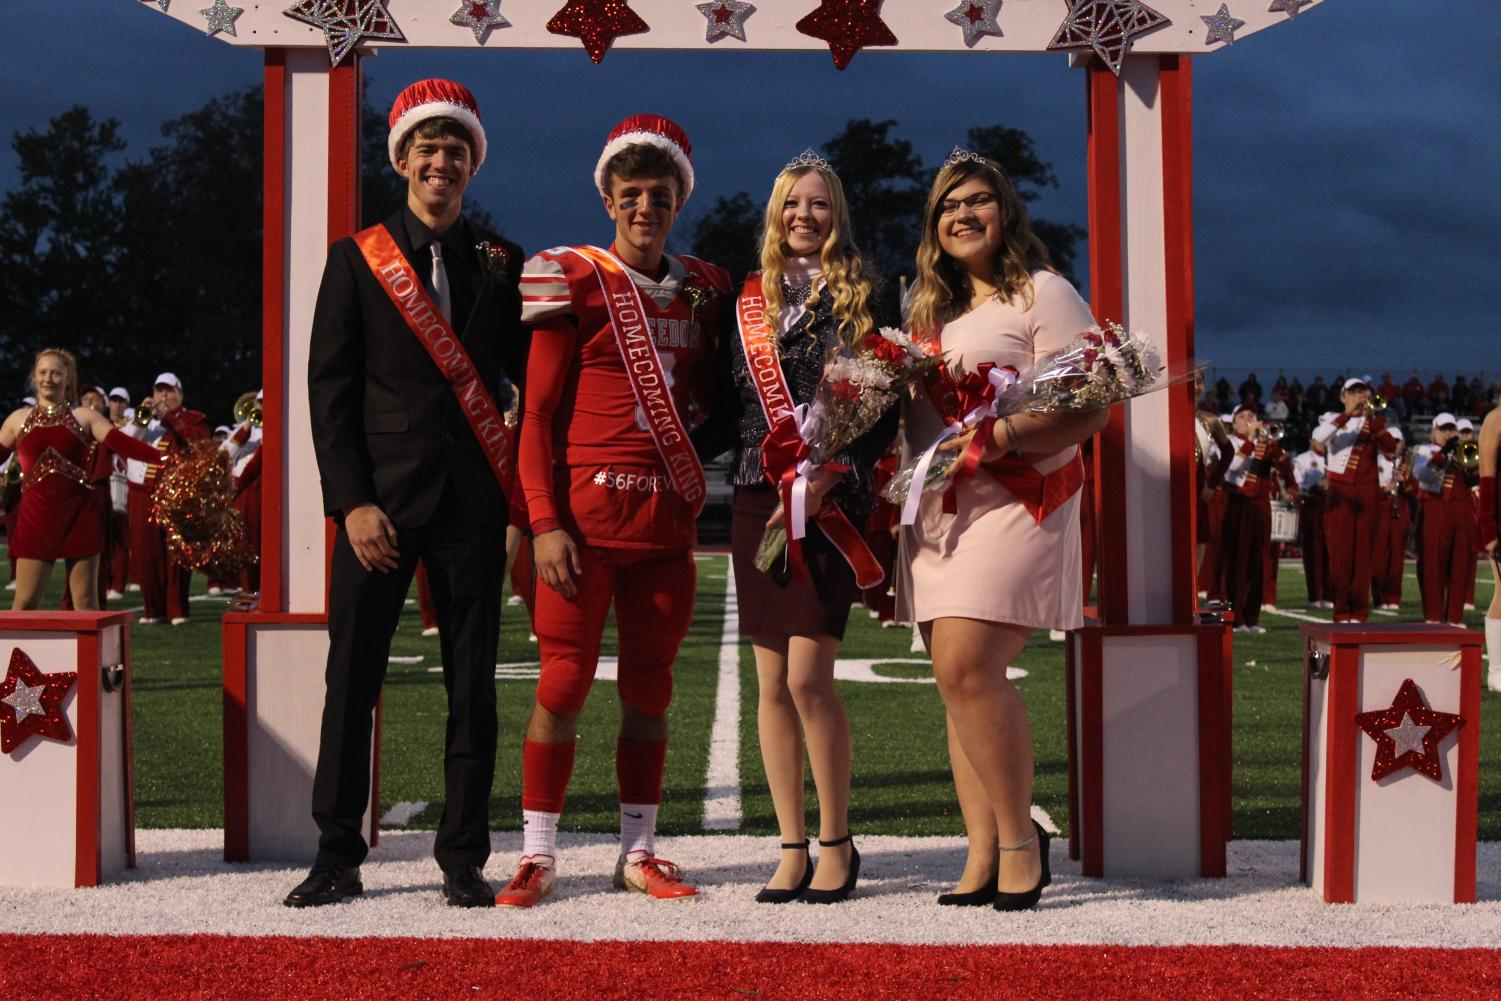 Rachel DeCesaris and Micheal Keith crown the next Homecoming King (Riley Adams) and Queen (Melissa Keith).